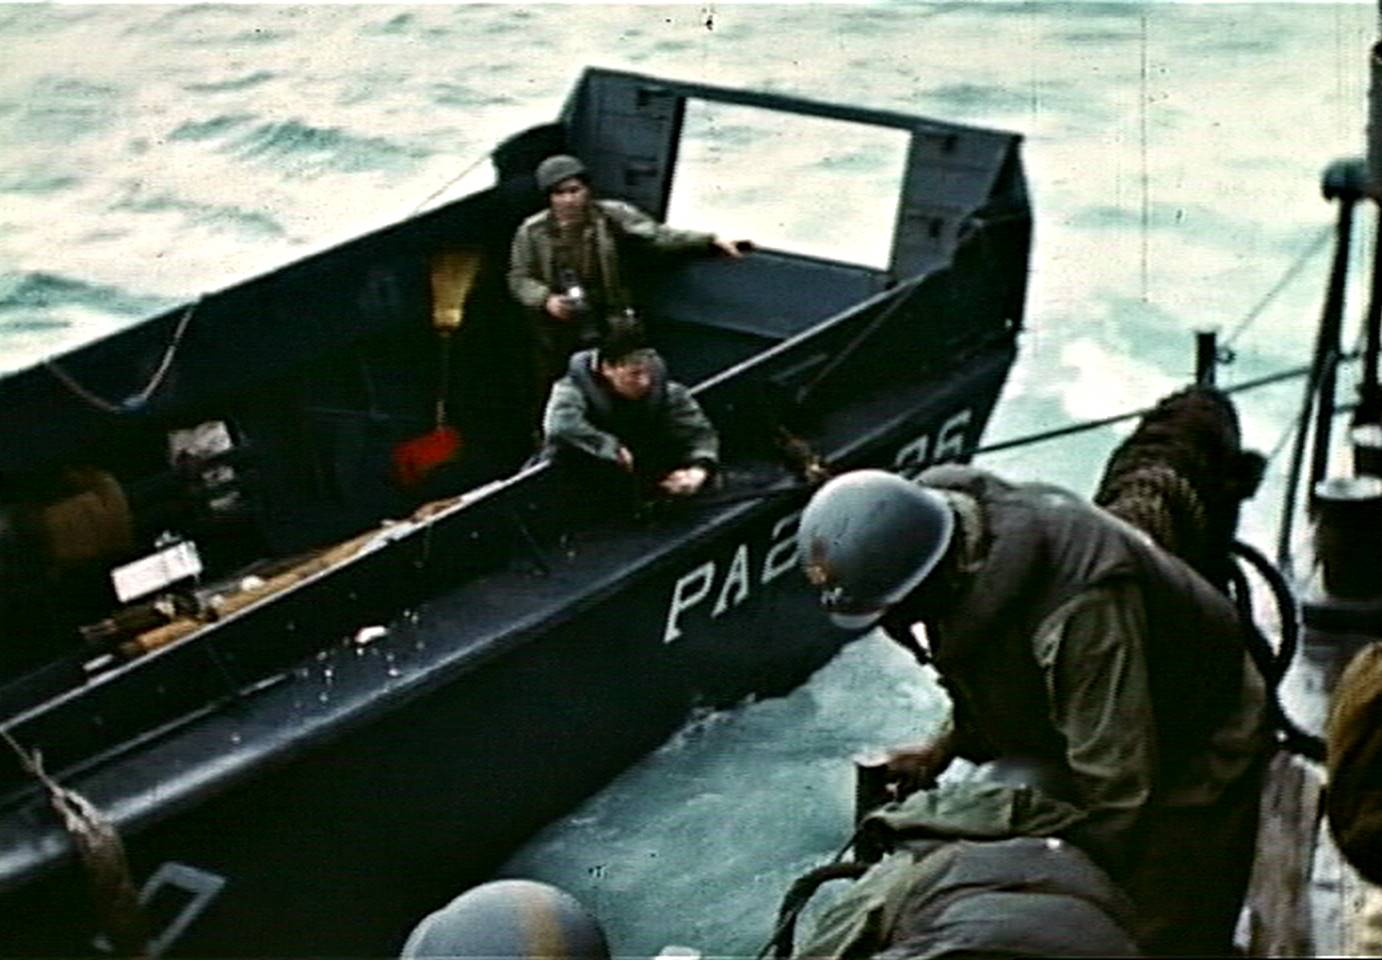 Fig. 12: Robert Capa, center rear, aboatd LCVP from USS Chase, photographing transfer of casualty, D-Day, frame from film by David T. Ruley